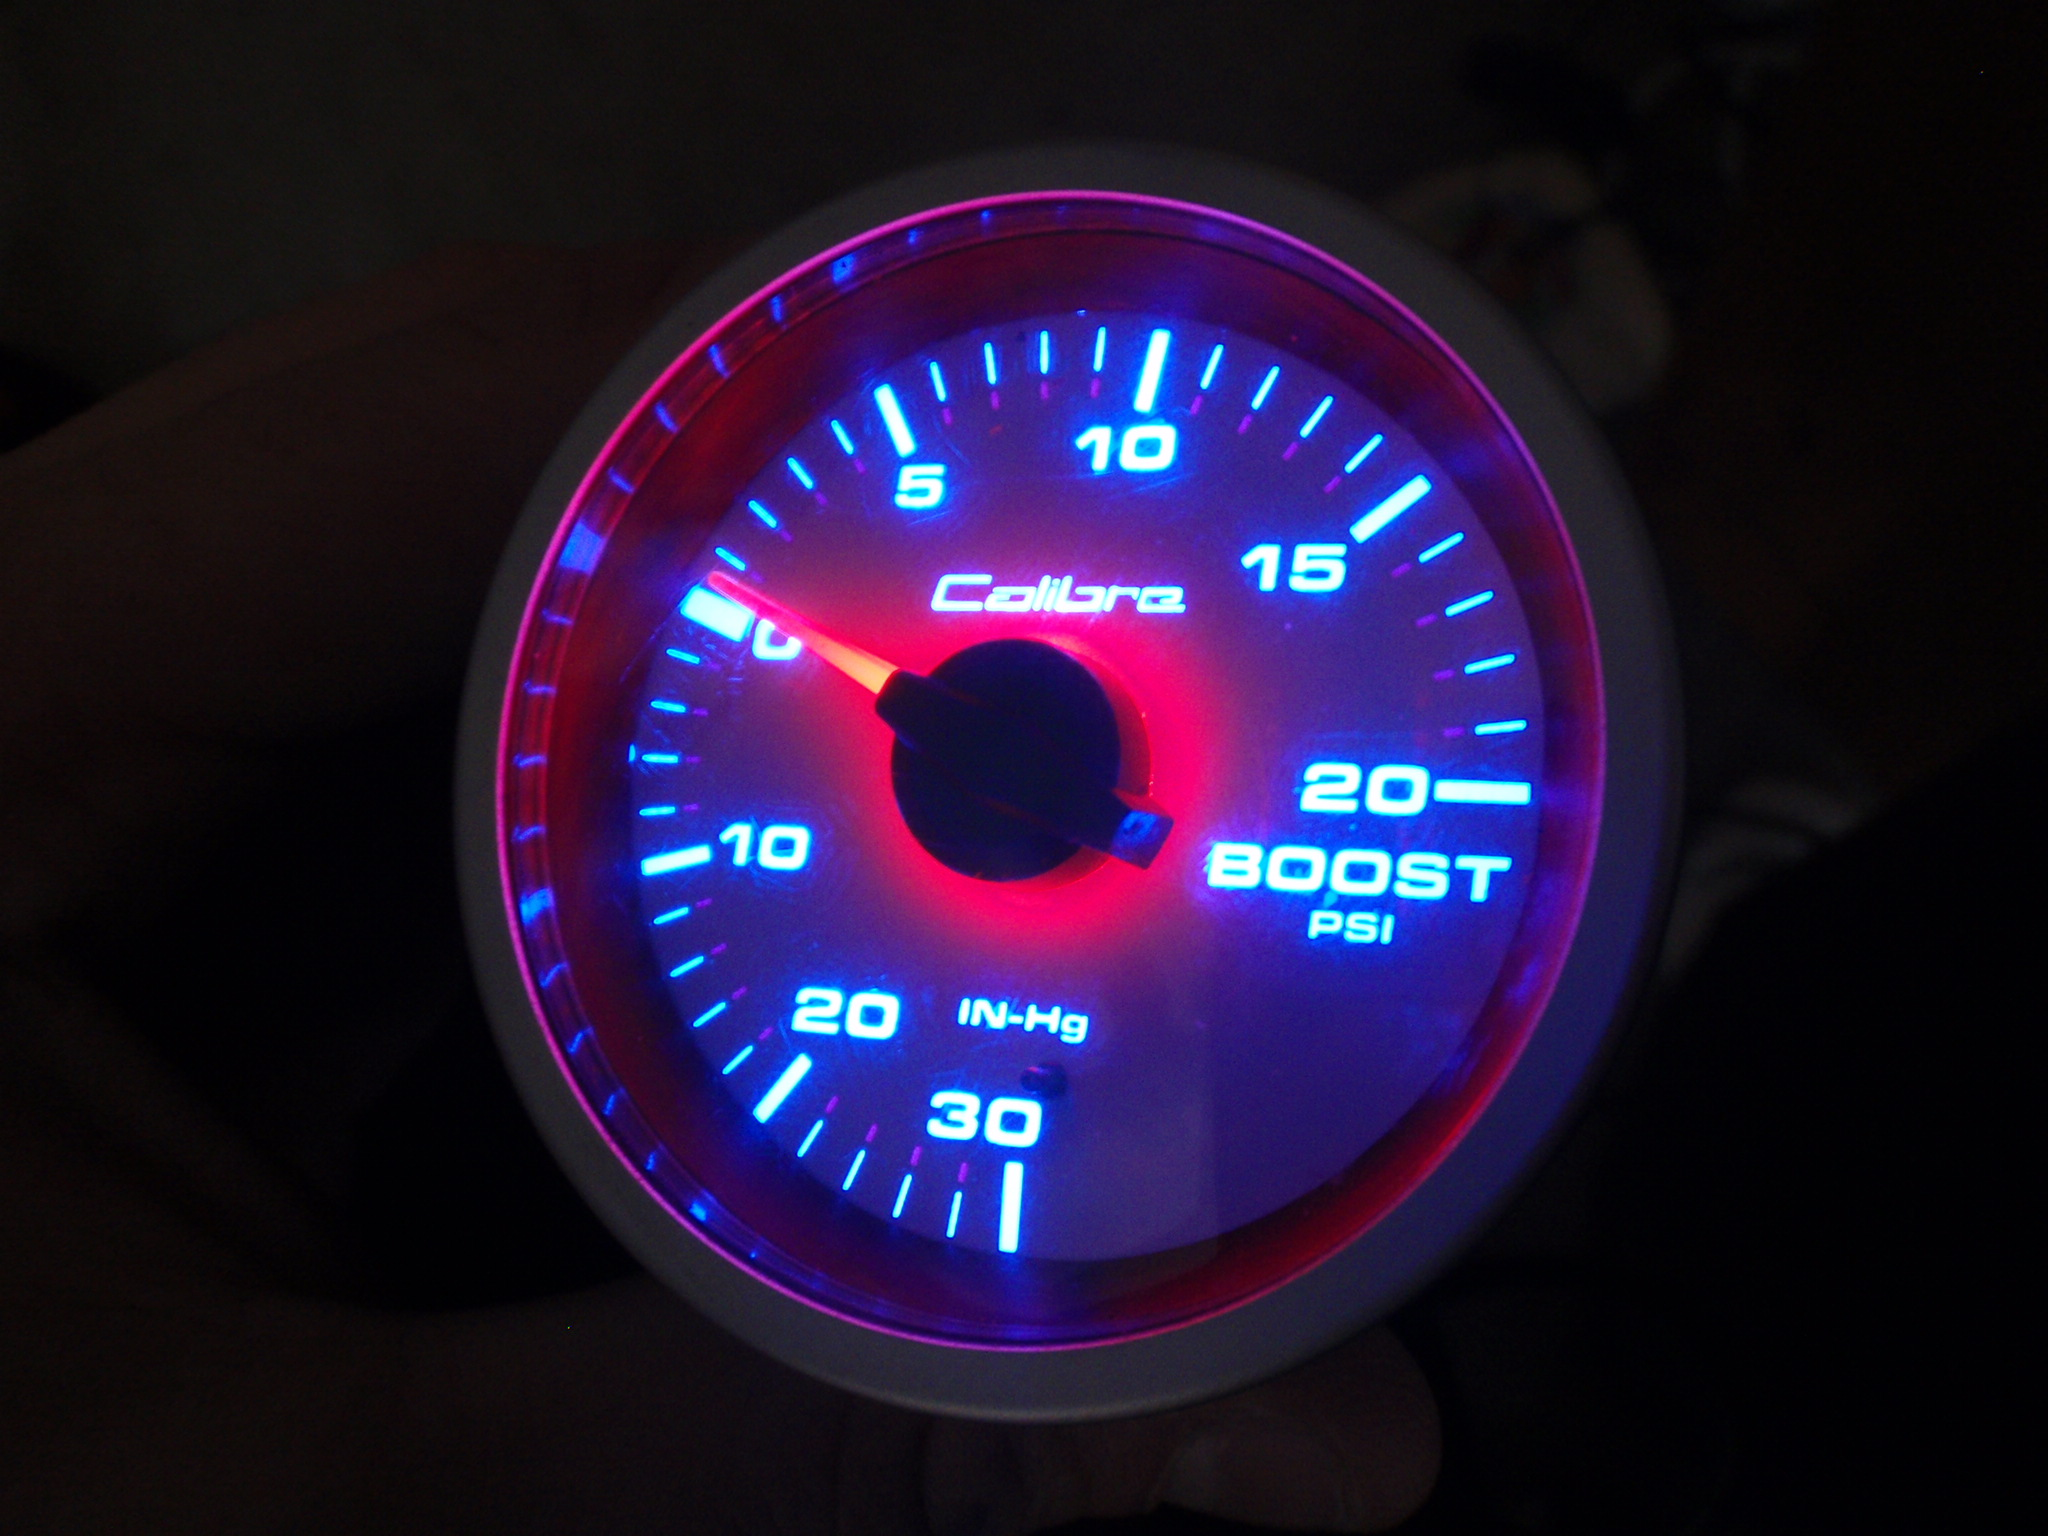 [CSDW_4250]   Calibre Boost Gauge - Mechanical, 52Mm, White Face, Blue Illumination - For  Sale (Private Car Parts and Accessories) - SAU Community | Caliber Boost Gauge |  | SAU Community